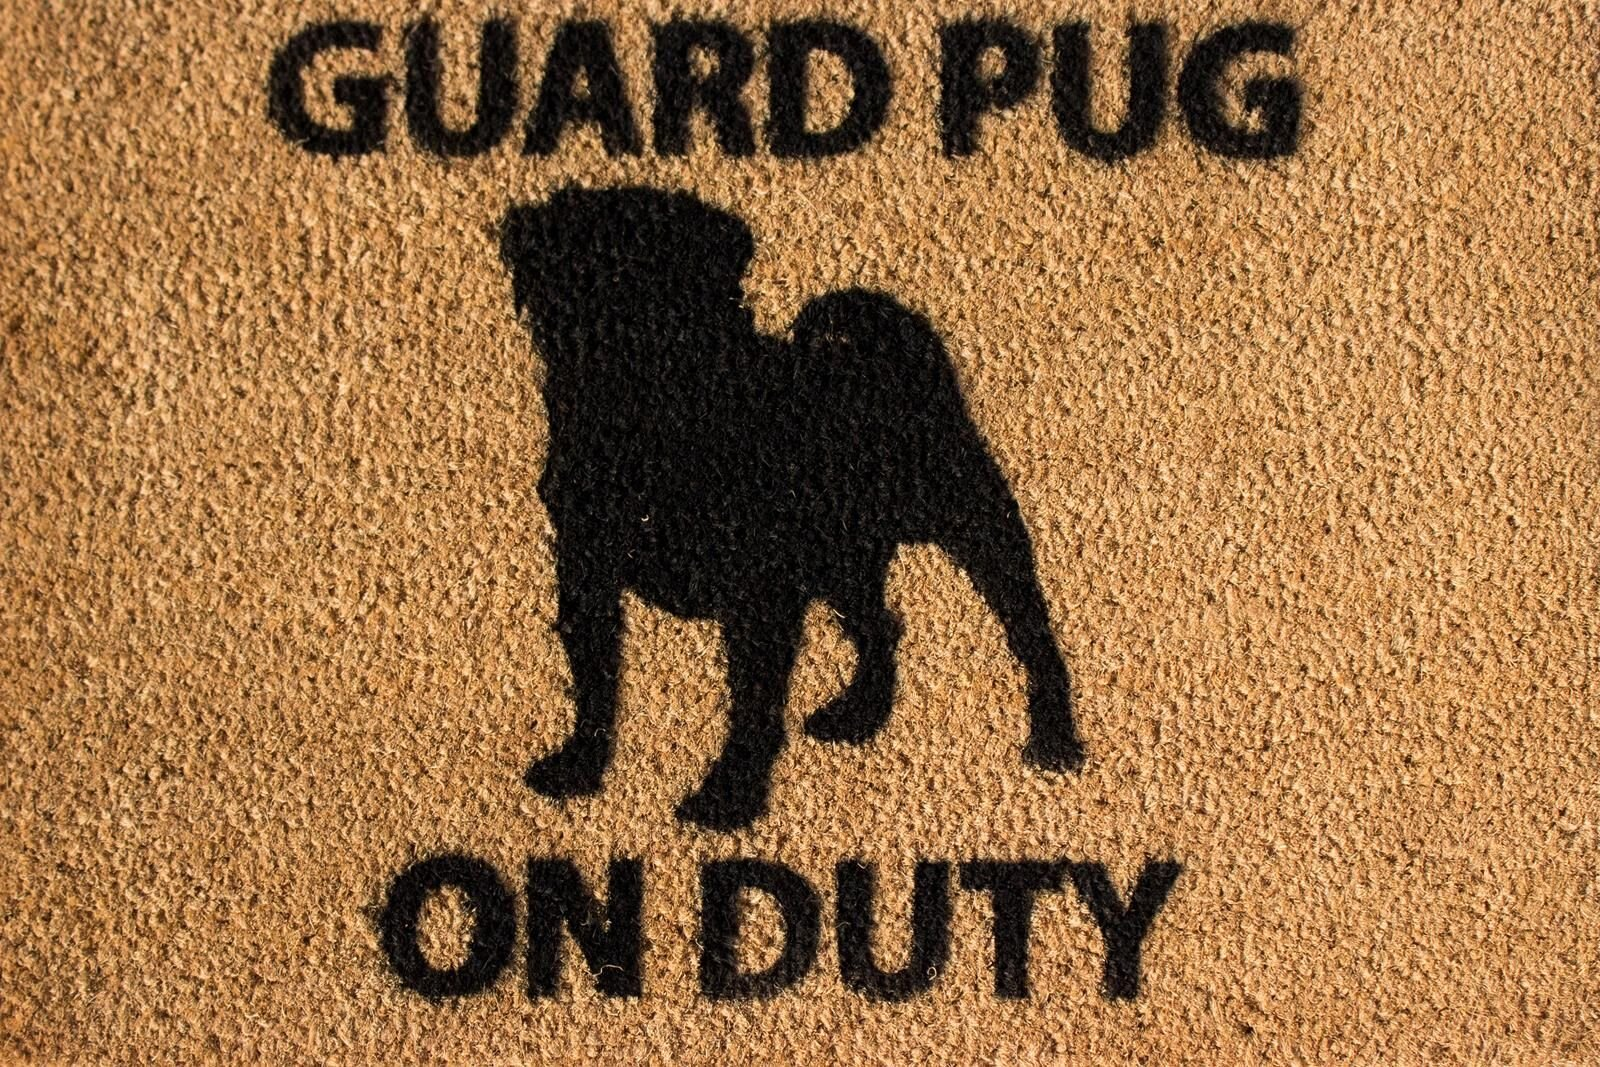 CKB Ltd Pug Novelty Doormat Unique Doormats Front/Back Funny Door Mats Made With A Non-Slip Pvc Backing - Natural Coir - Indoor & Outdoor